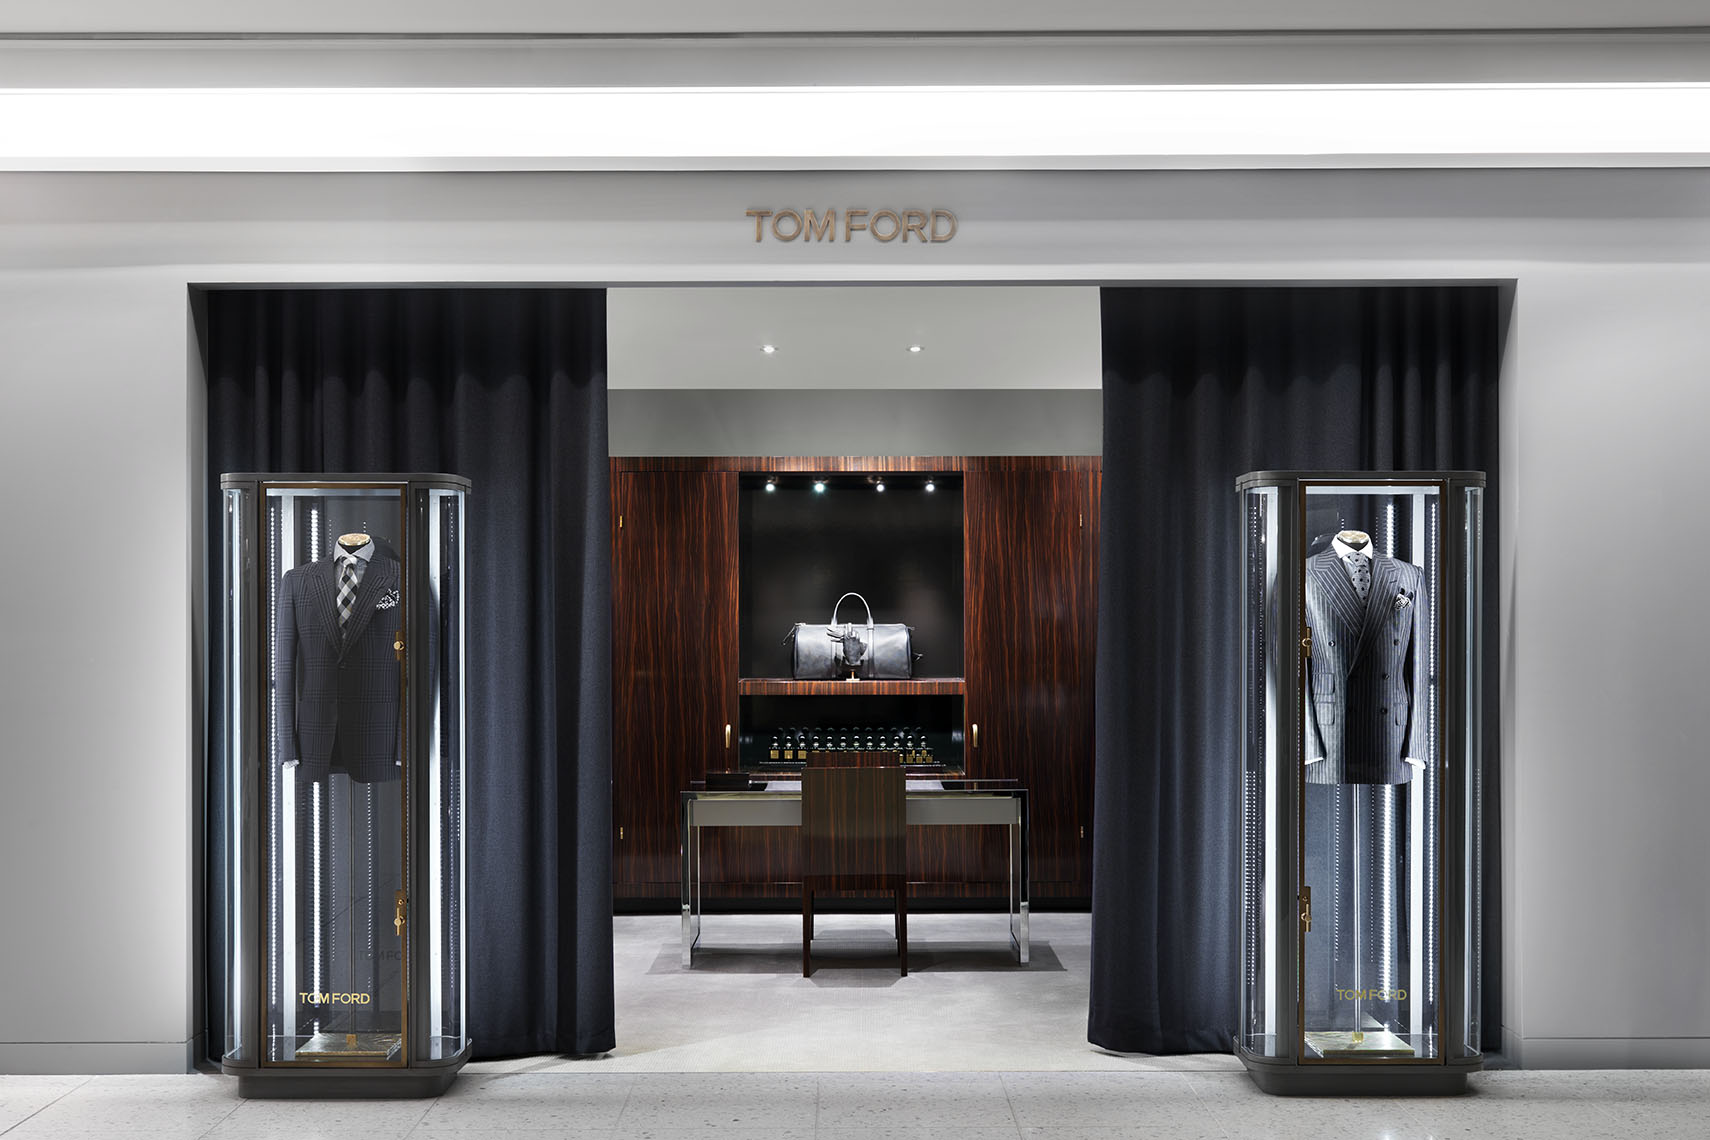 APF_Tom Ford 005C